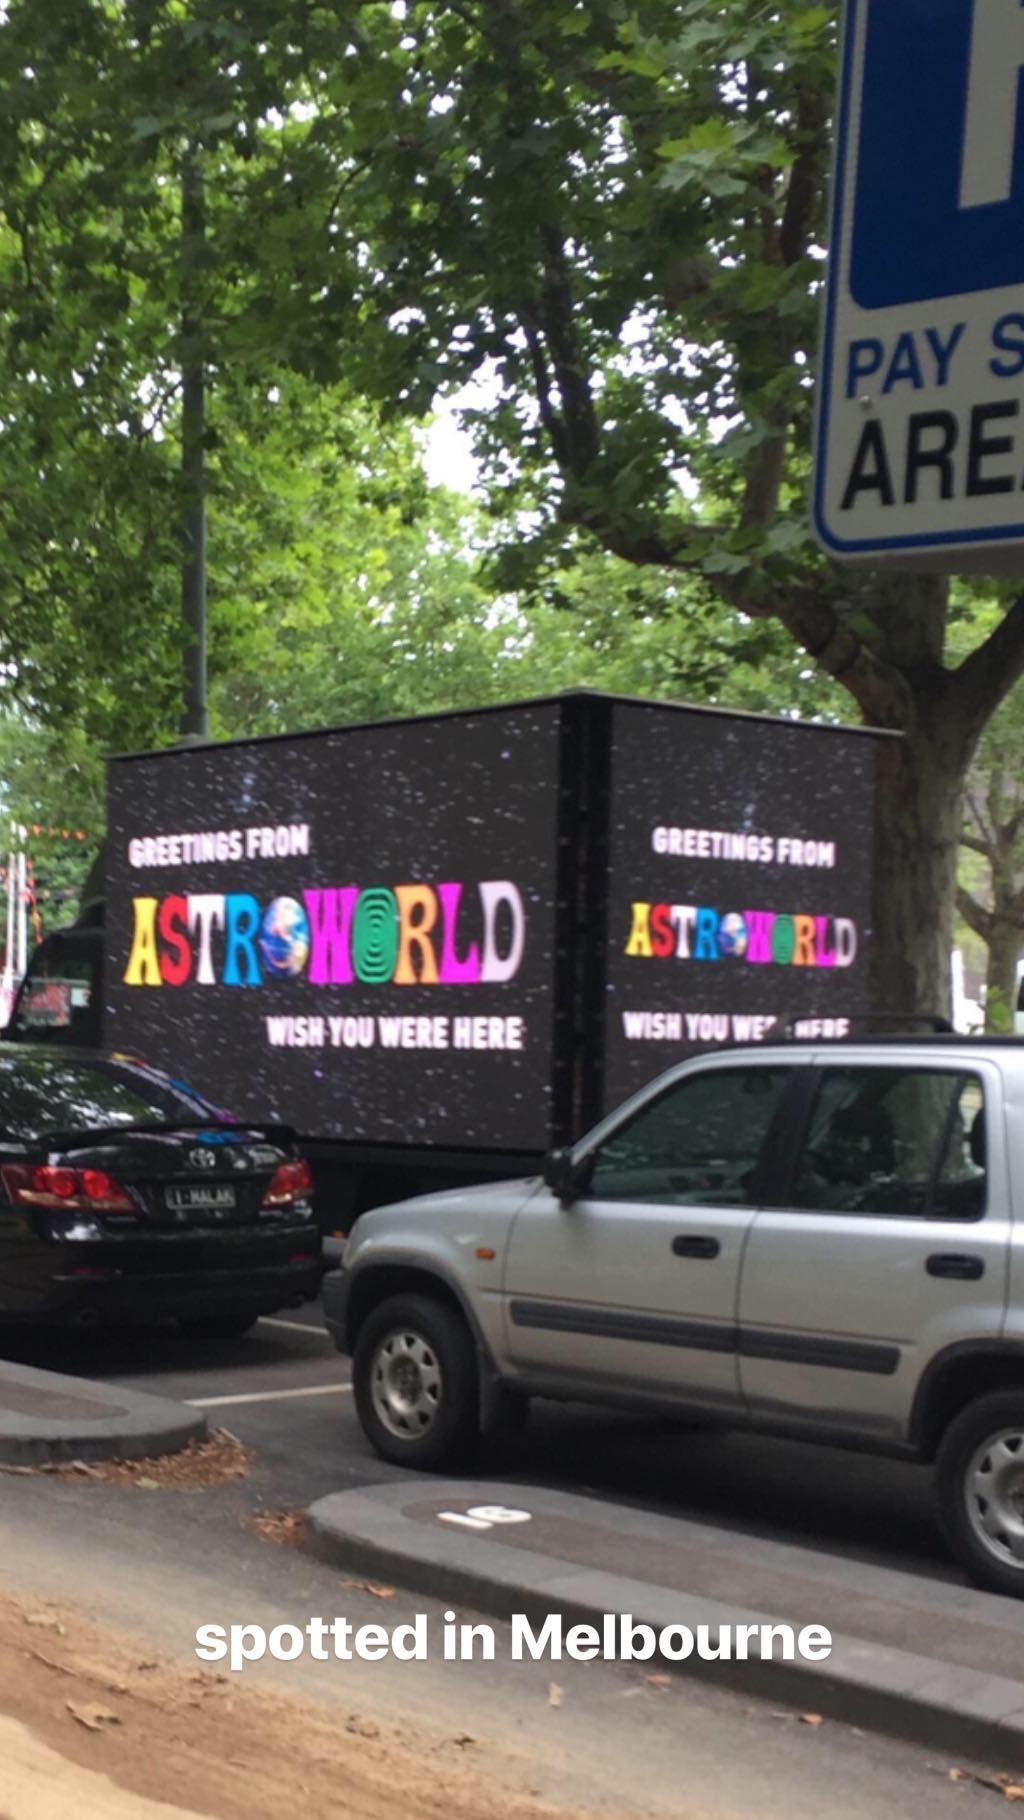 THE CUT | ASTROWORLD AUSTRALIA RUMOURS